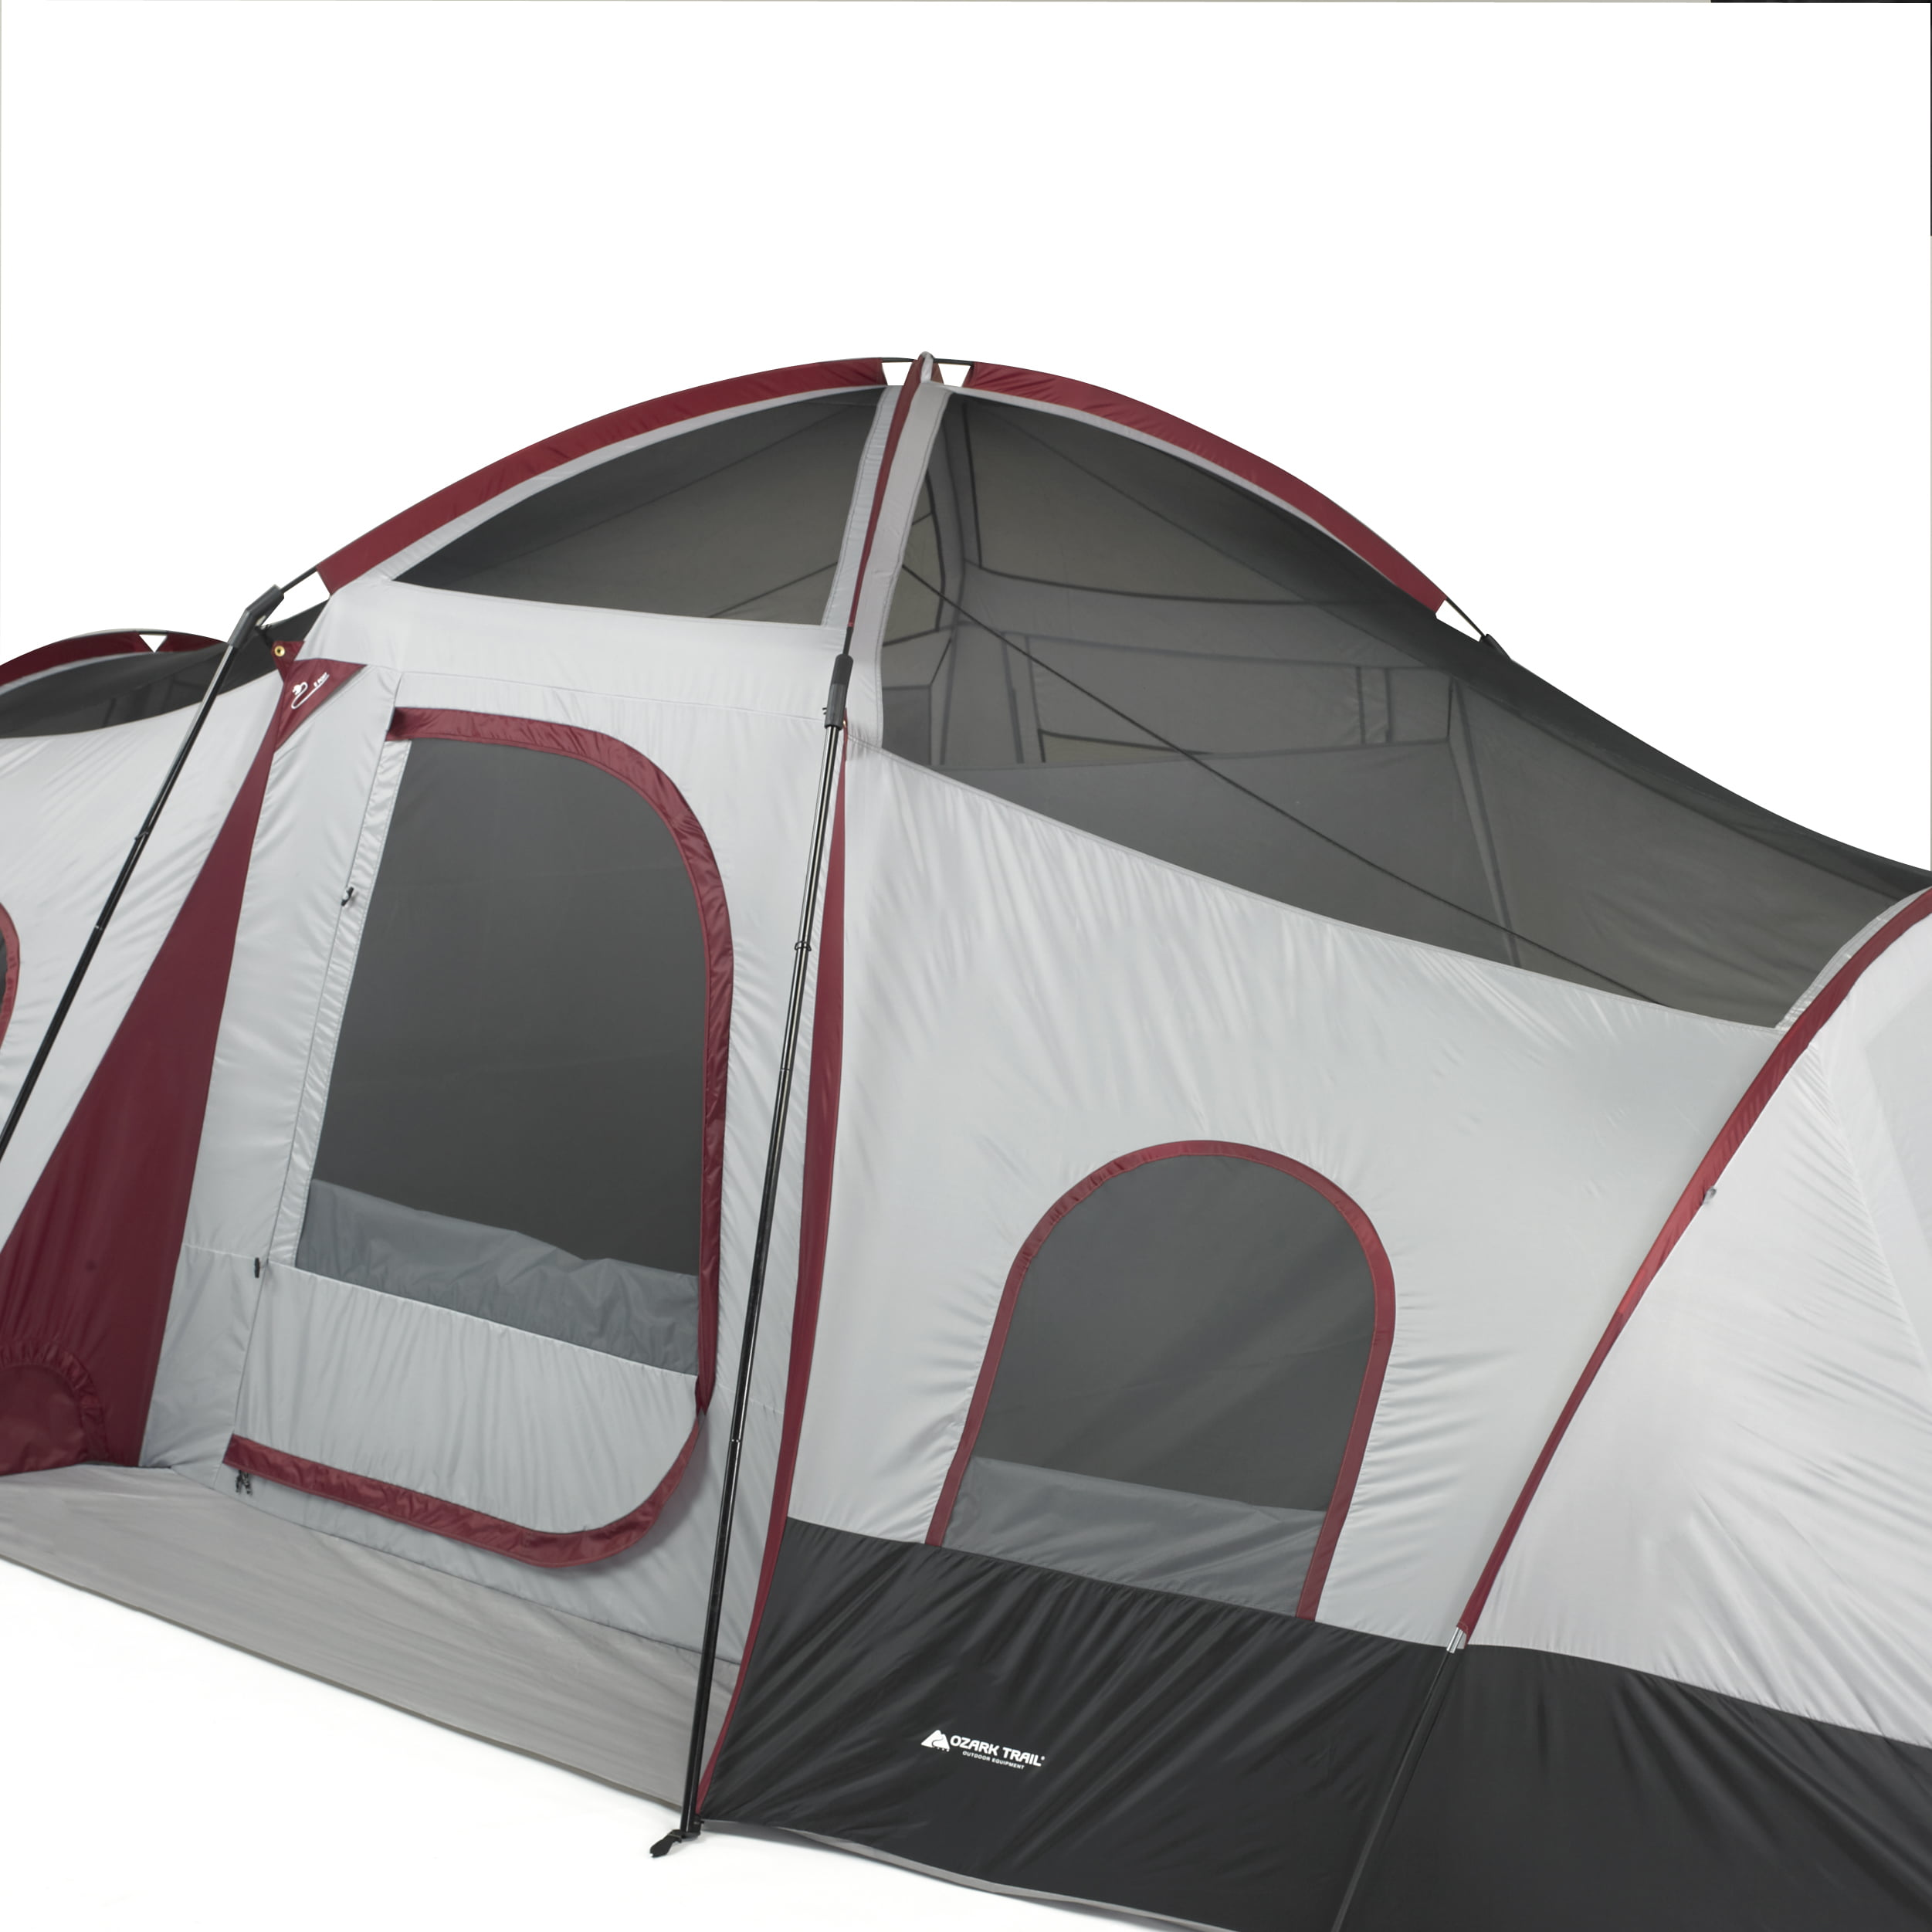 10 Person 3 Room Cabin Tent with Side Entrances Camping ...